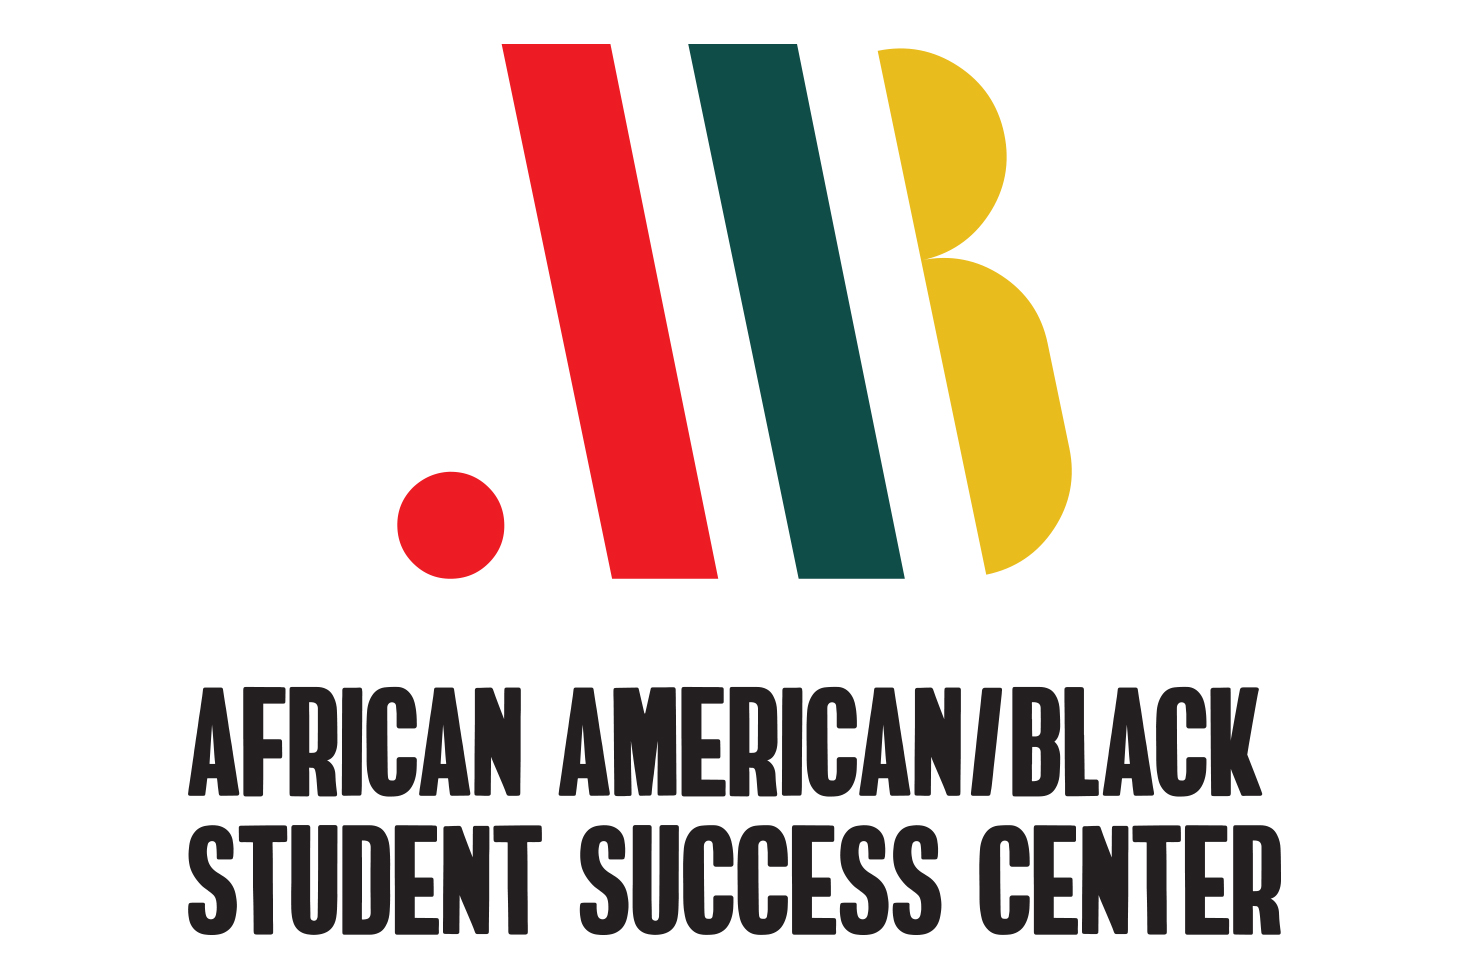 African American/Black Student Success Center